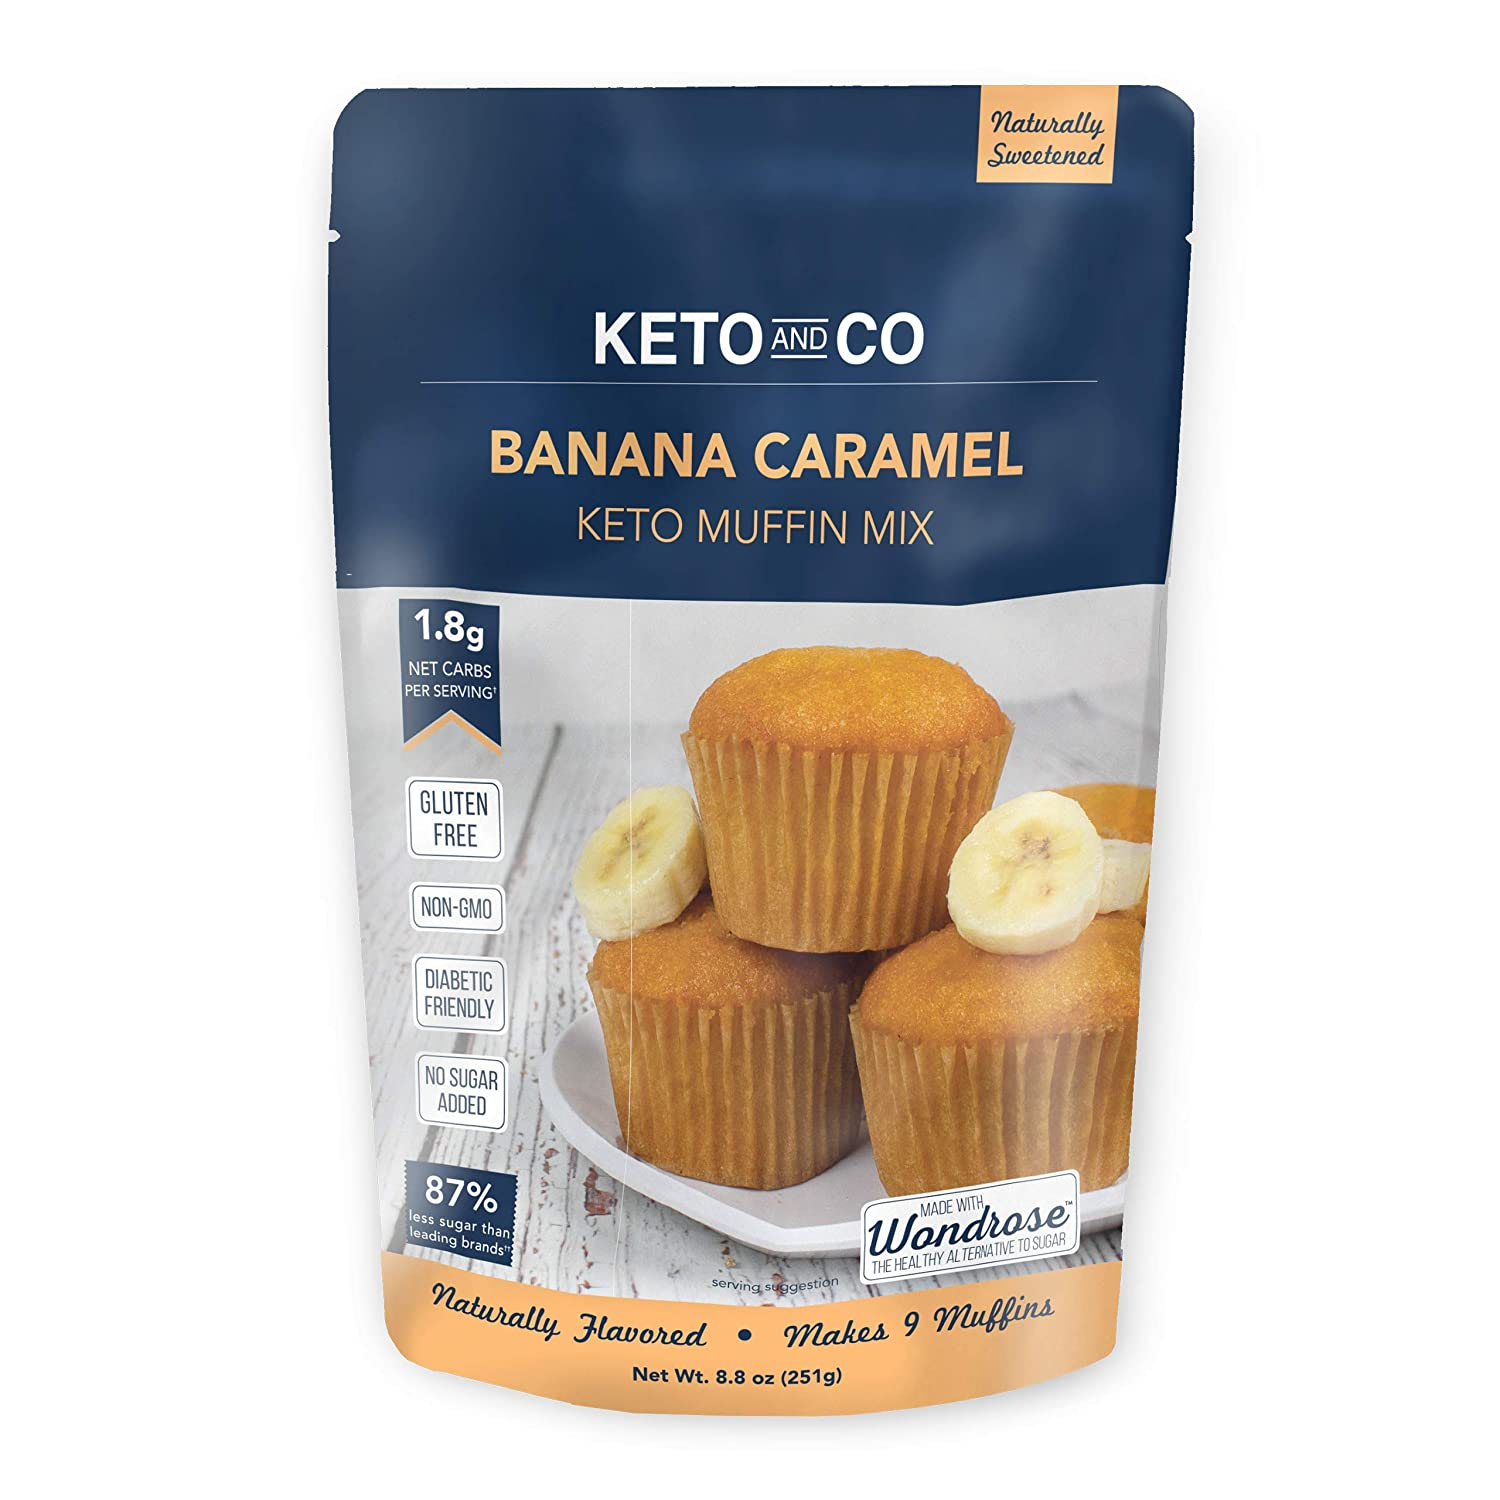 Banana Caramel Keto Muffin Mix by Net Co and 1.8g Sale Special Price Ca Just Houston Mall